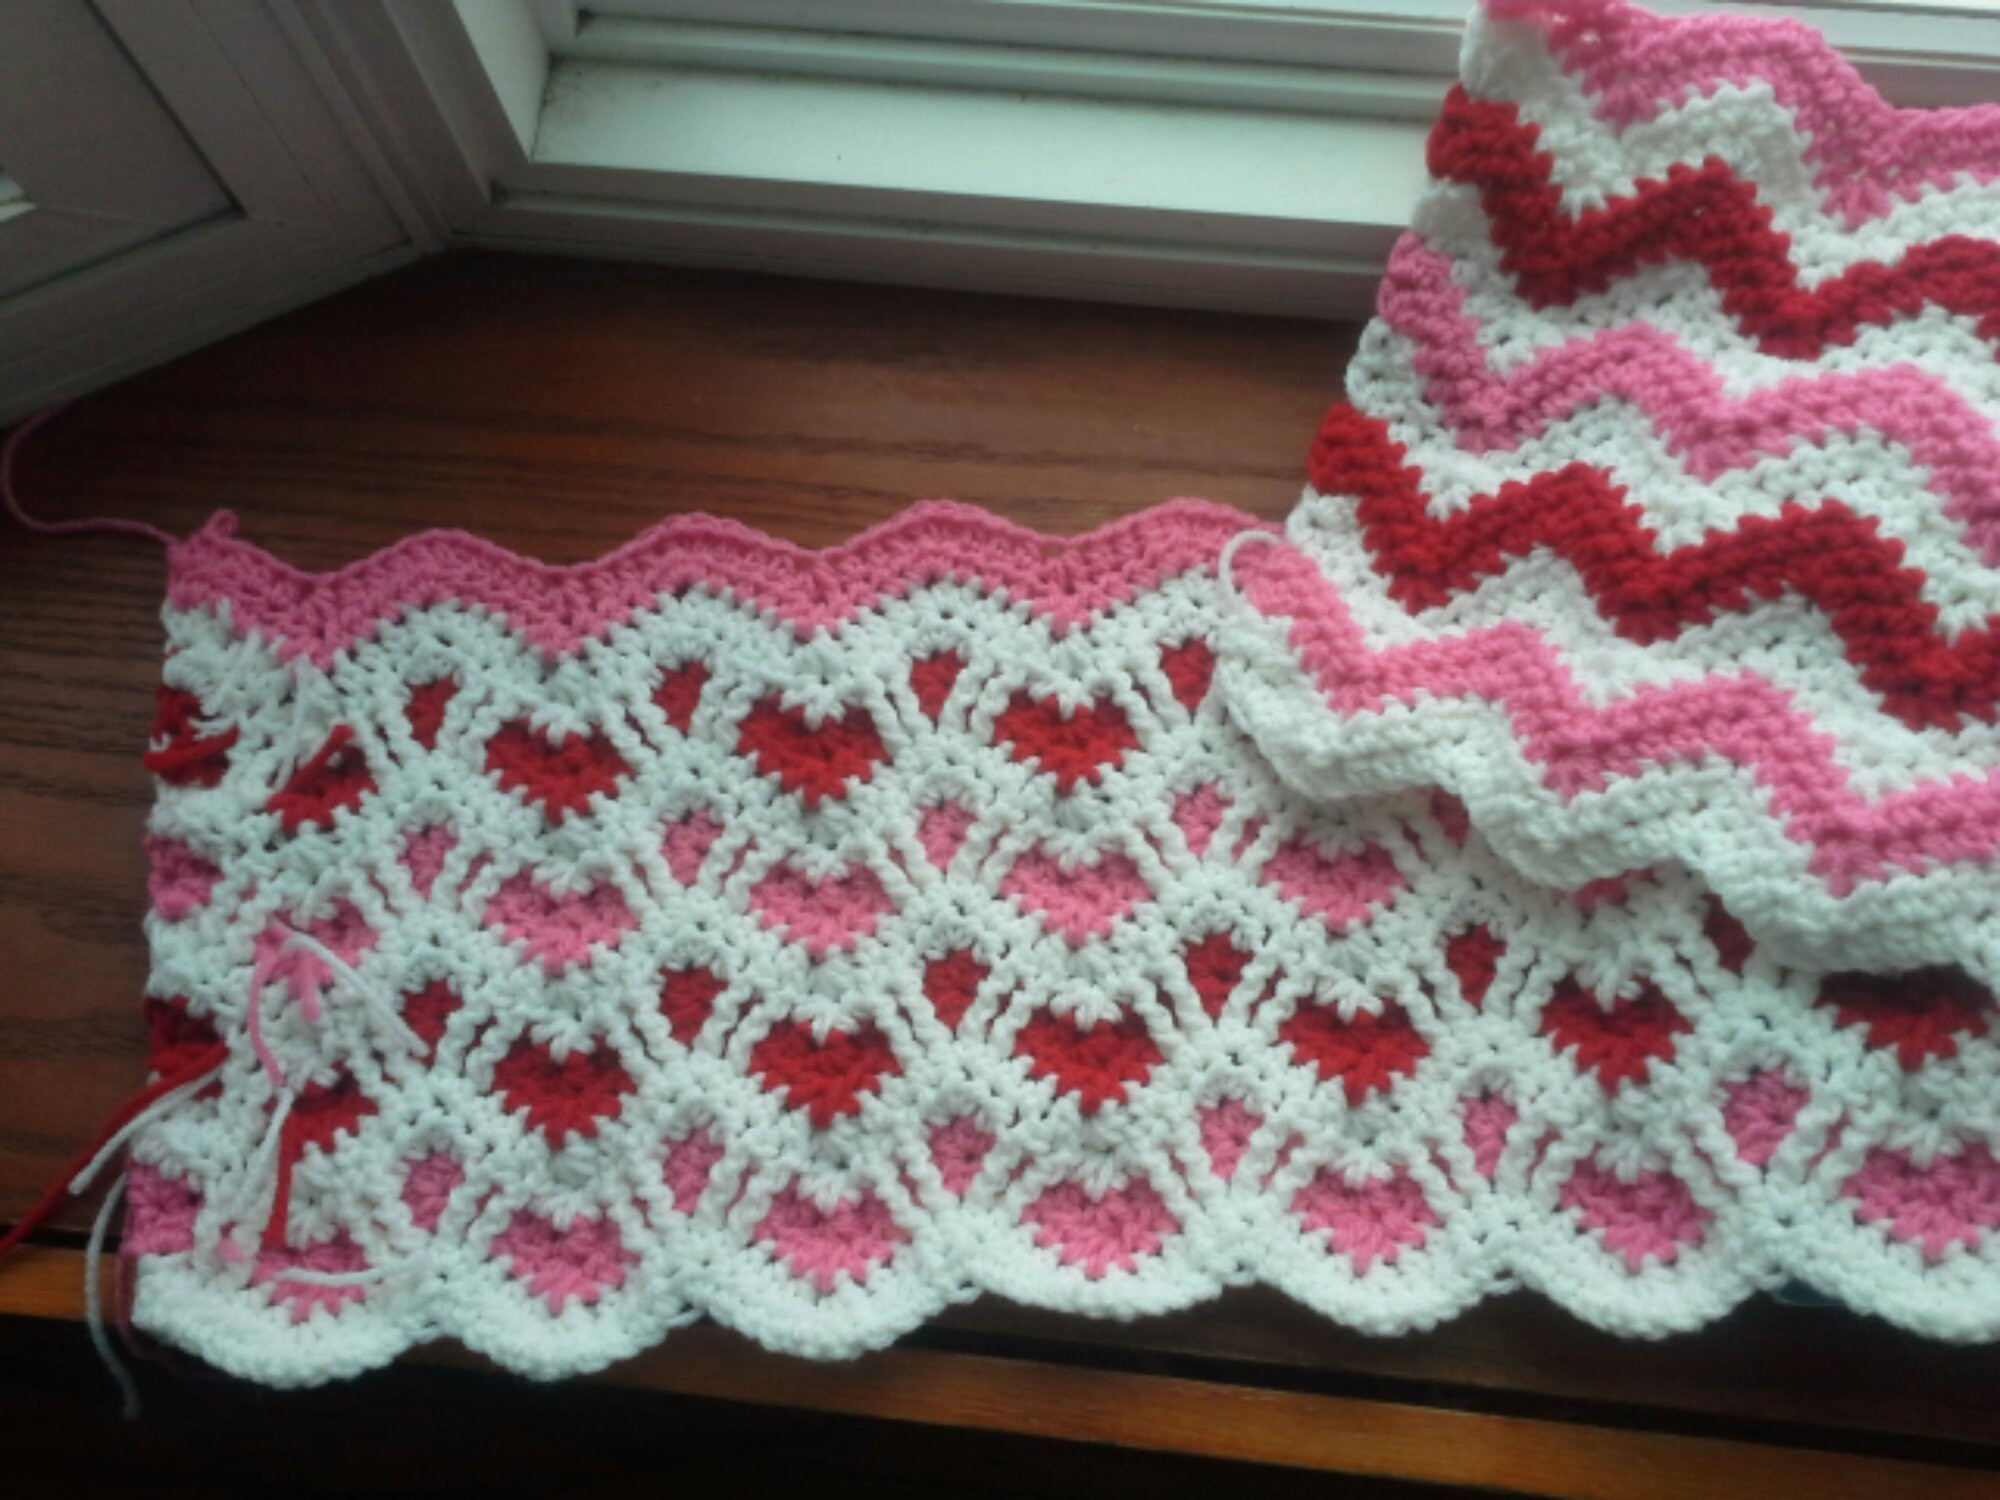 Crochet Afghan Patterns Best Of Free Crochet Afghan Patterns with Hearts Dancox for Of New 40 Pics Crochet Afghan Patterns